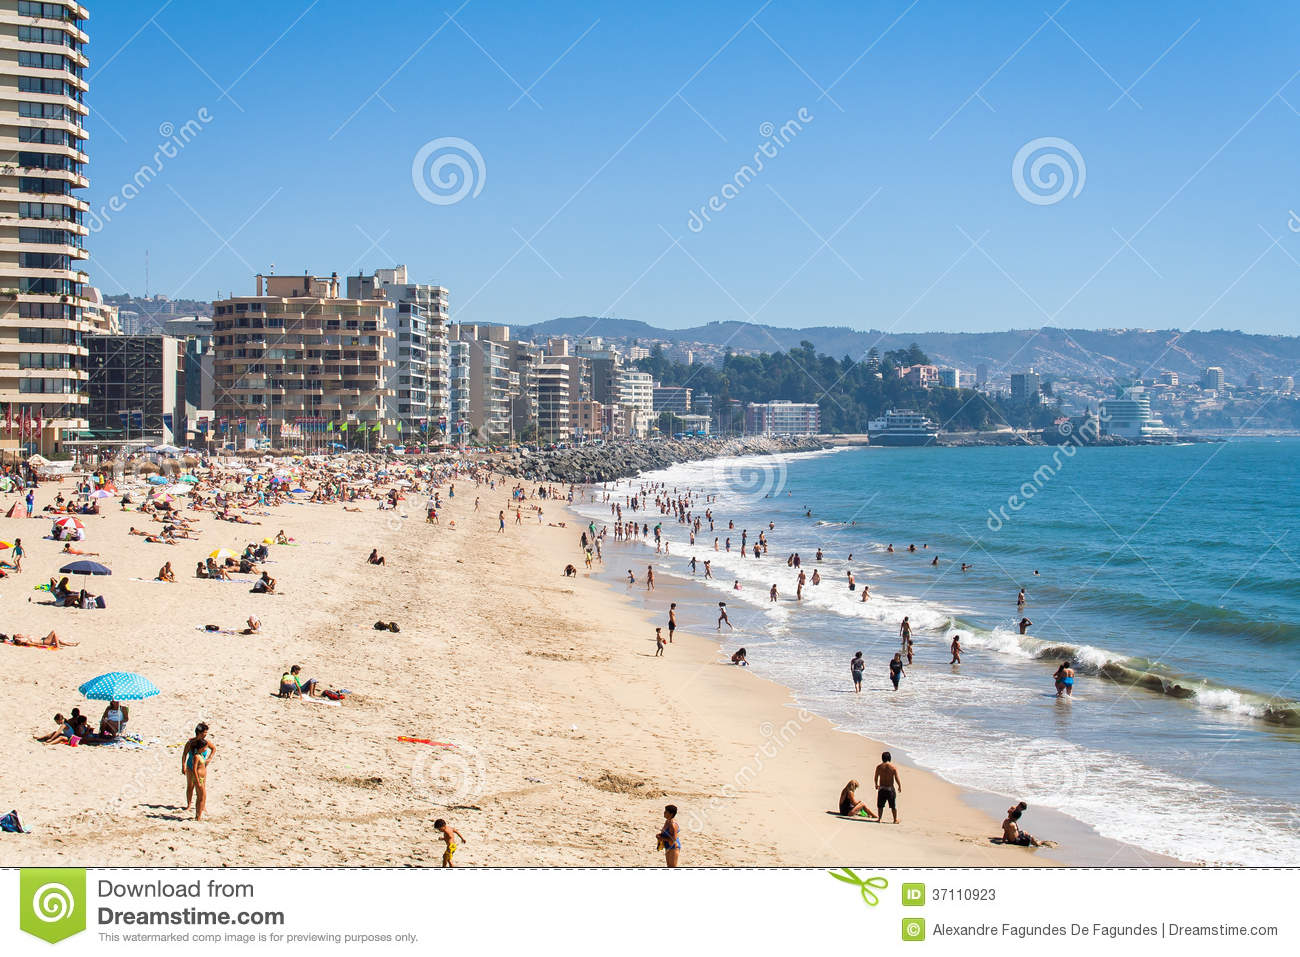 plage et paysage urbain en vina del mar photo stock ditorial image 37110923. Black Bedroom Furniture Sets. Home Design Ideas